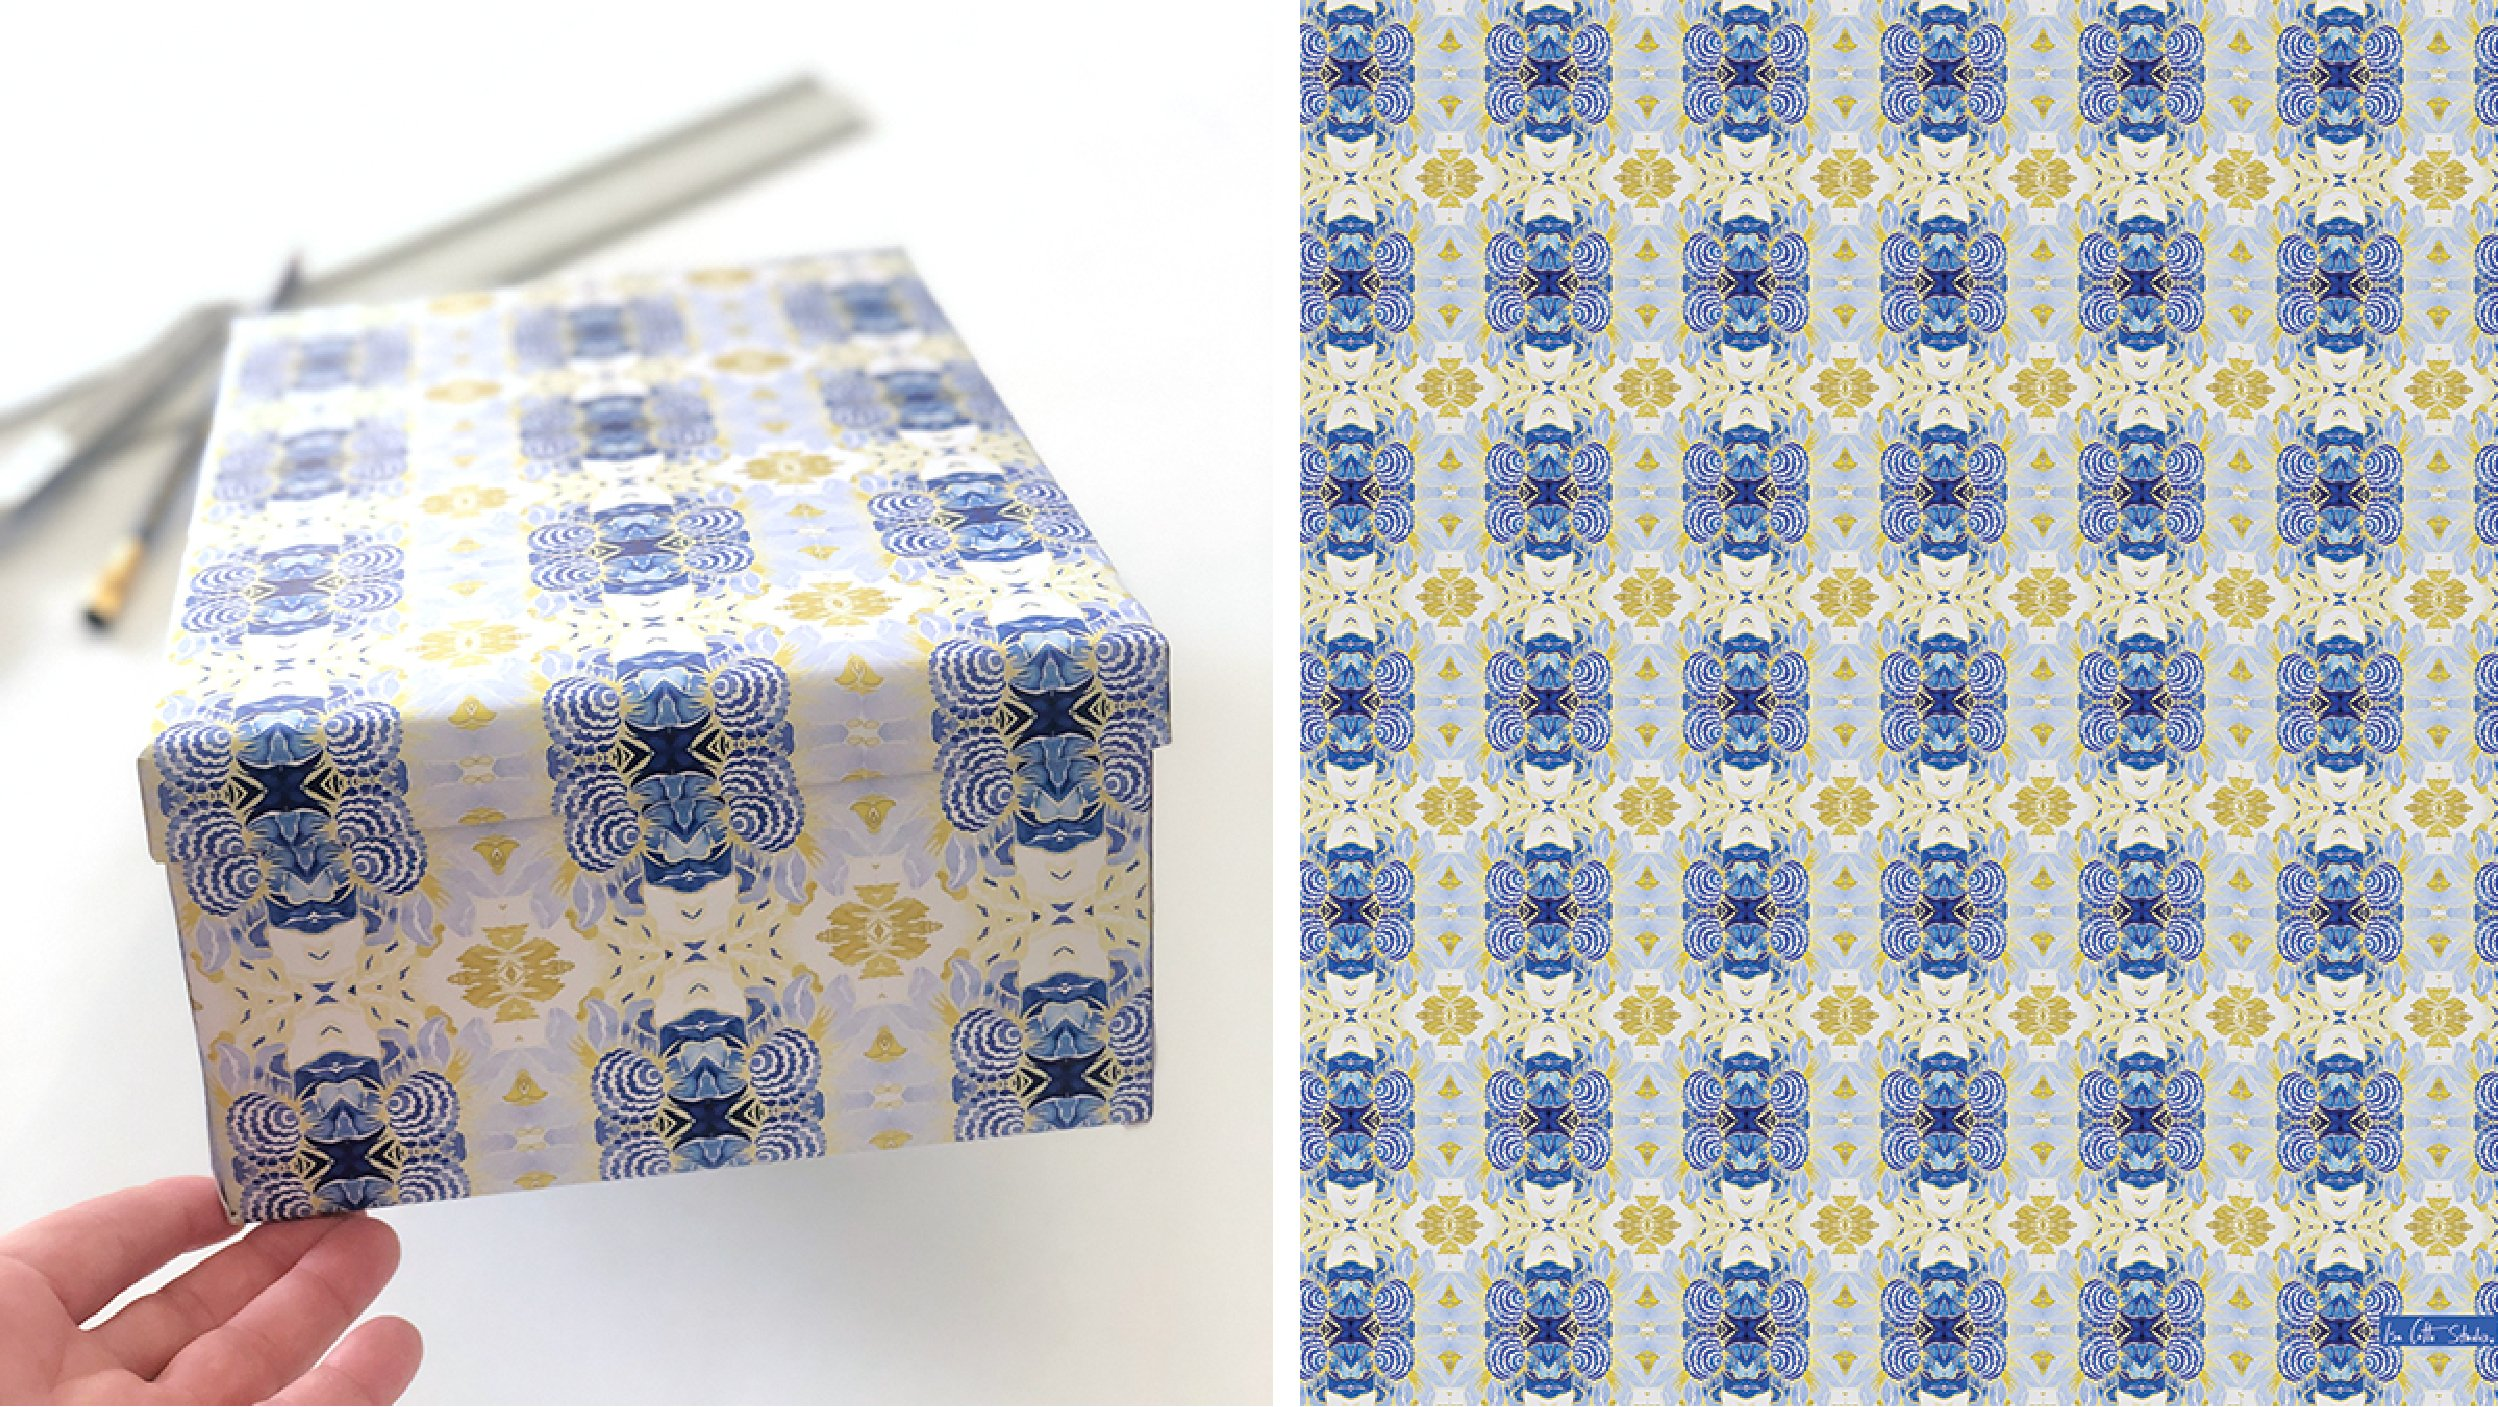 wrapped two-piece box showing how the wrapping paper aligns between the lid and the bottom of the box. wrapping paper is a blue, white and yellow pattern with a kaleidoscope effect